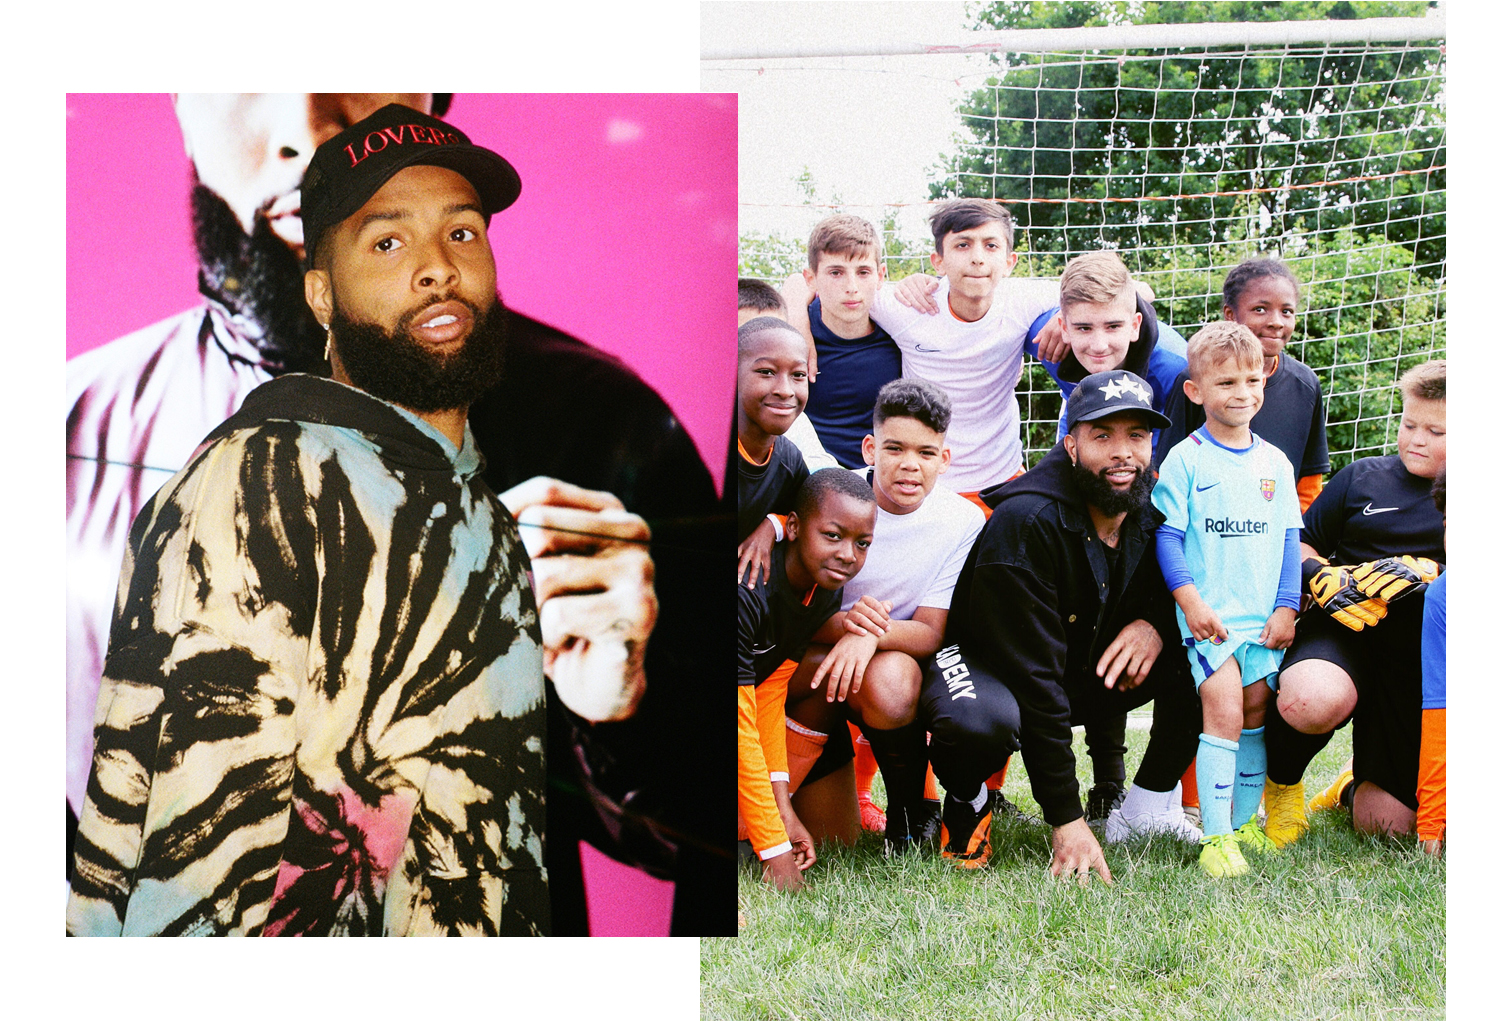 Odell Beckham Jr Took Over Tottenham with Nike to Meet London's Next Generation of Stars